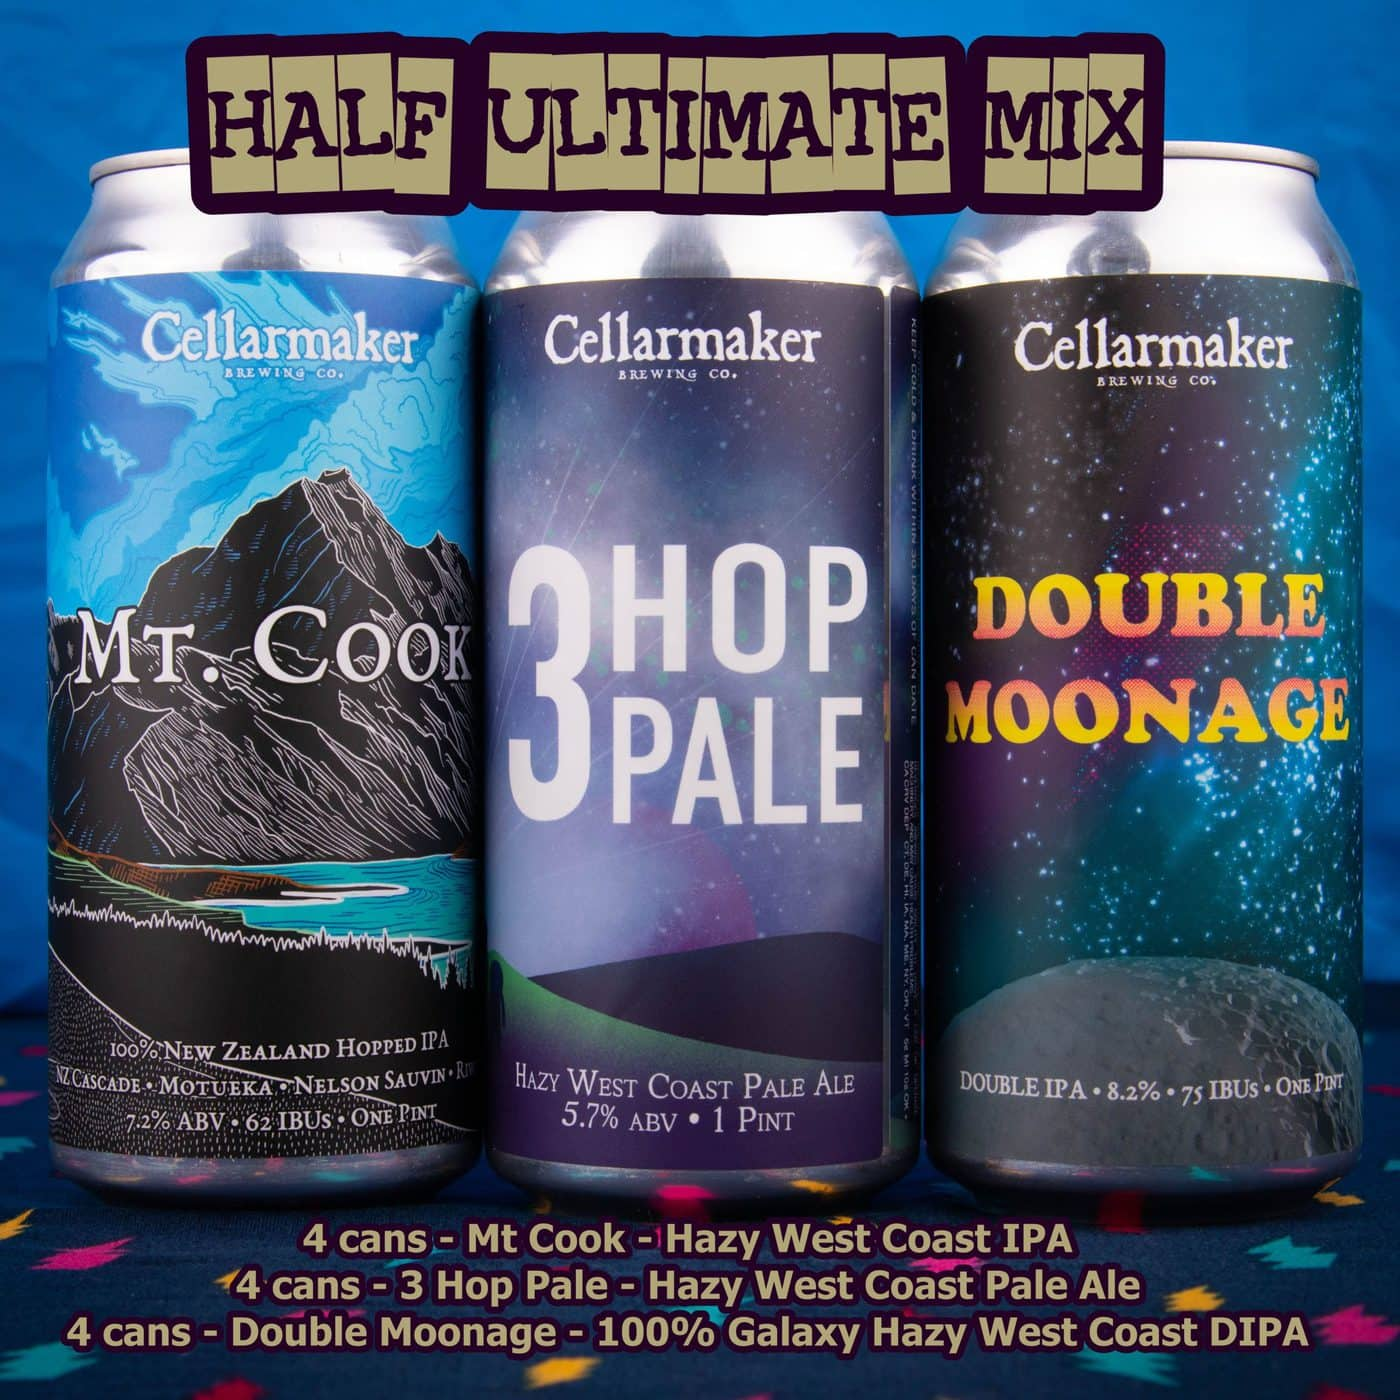 12 CANS – Half Ultimate Hoppy MIX – 4 Mt Cook IPA, 4 Three Hop Pale Ale And 4 Double Moonage Hazy DIPA – Shipping Out Tuesday 5/11 For Next Day Delivery*